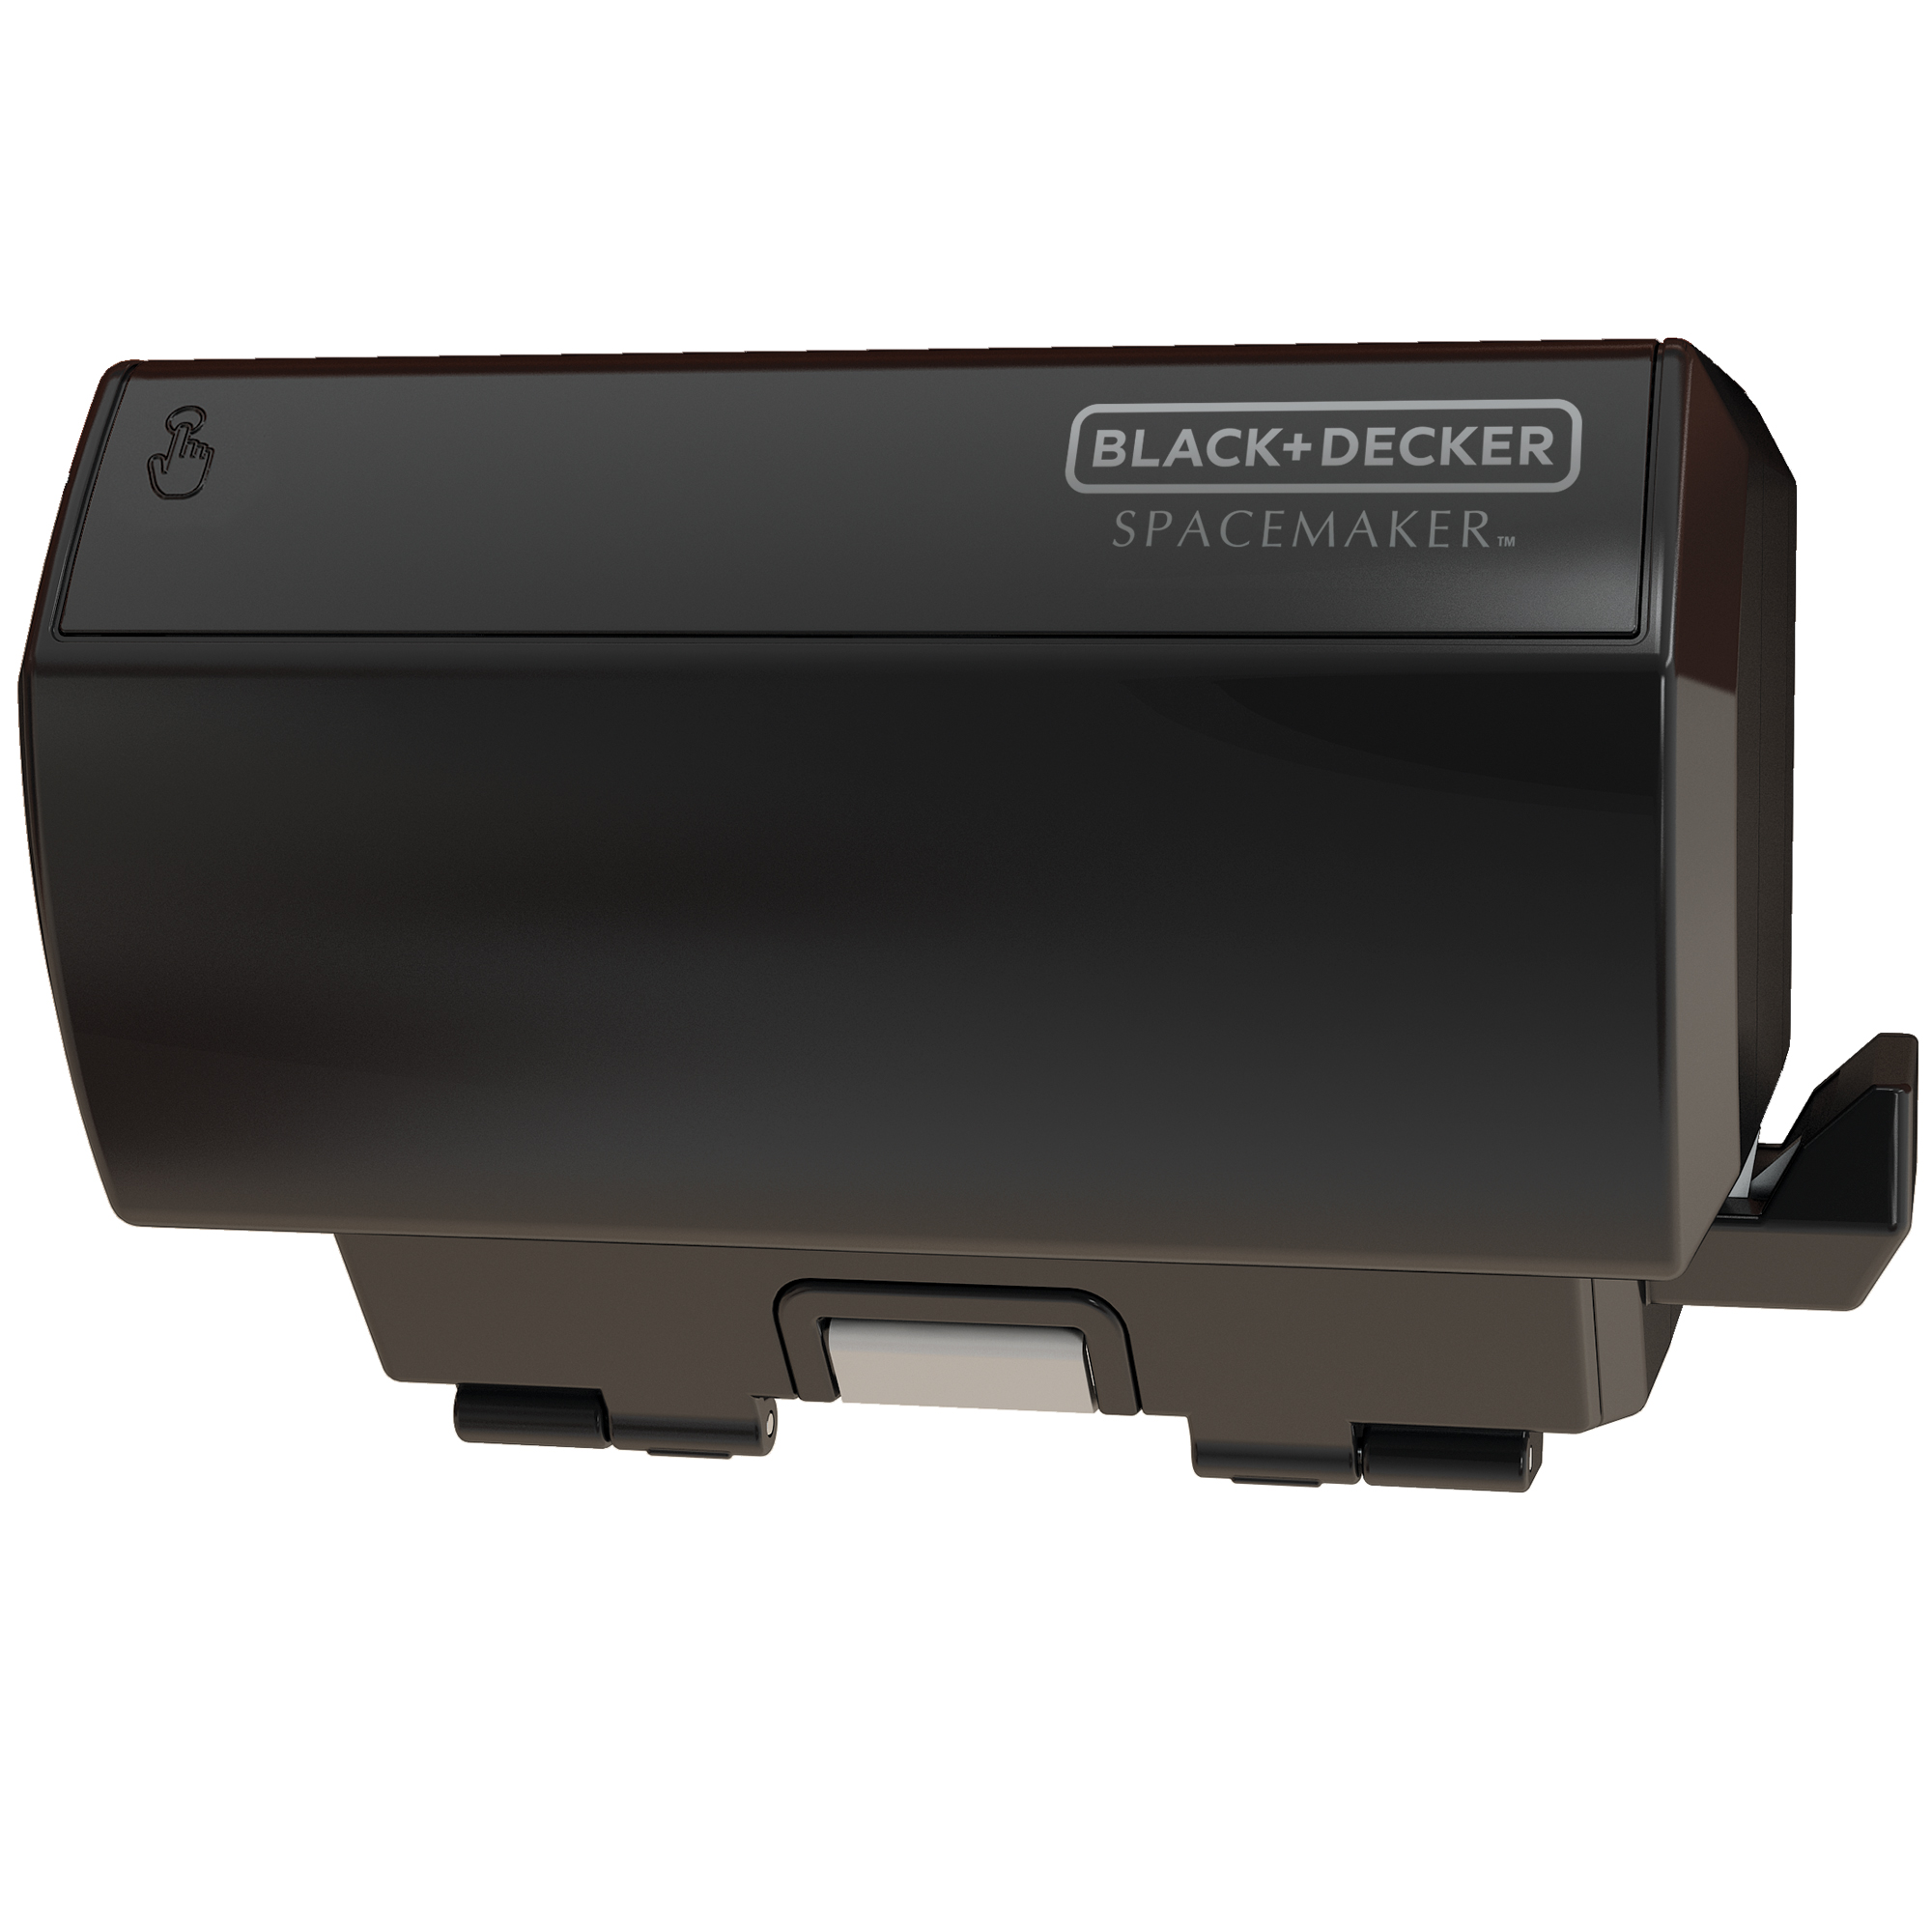 black decker spacemaker can opener co100b black decker rh blackanddeckerappliances com under cabinet can opener bed bath and beyond under cabinet can opener lowes